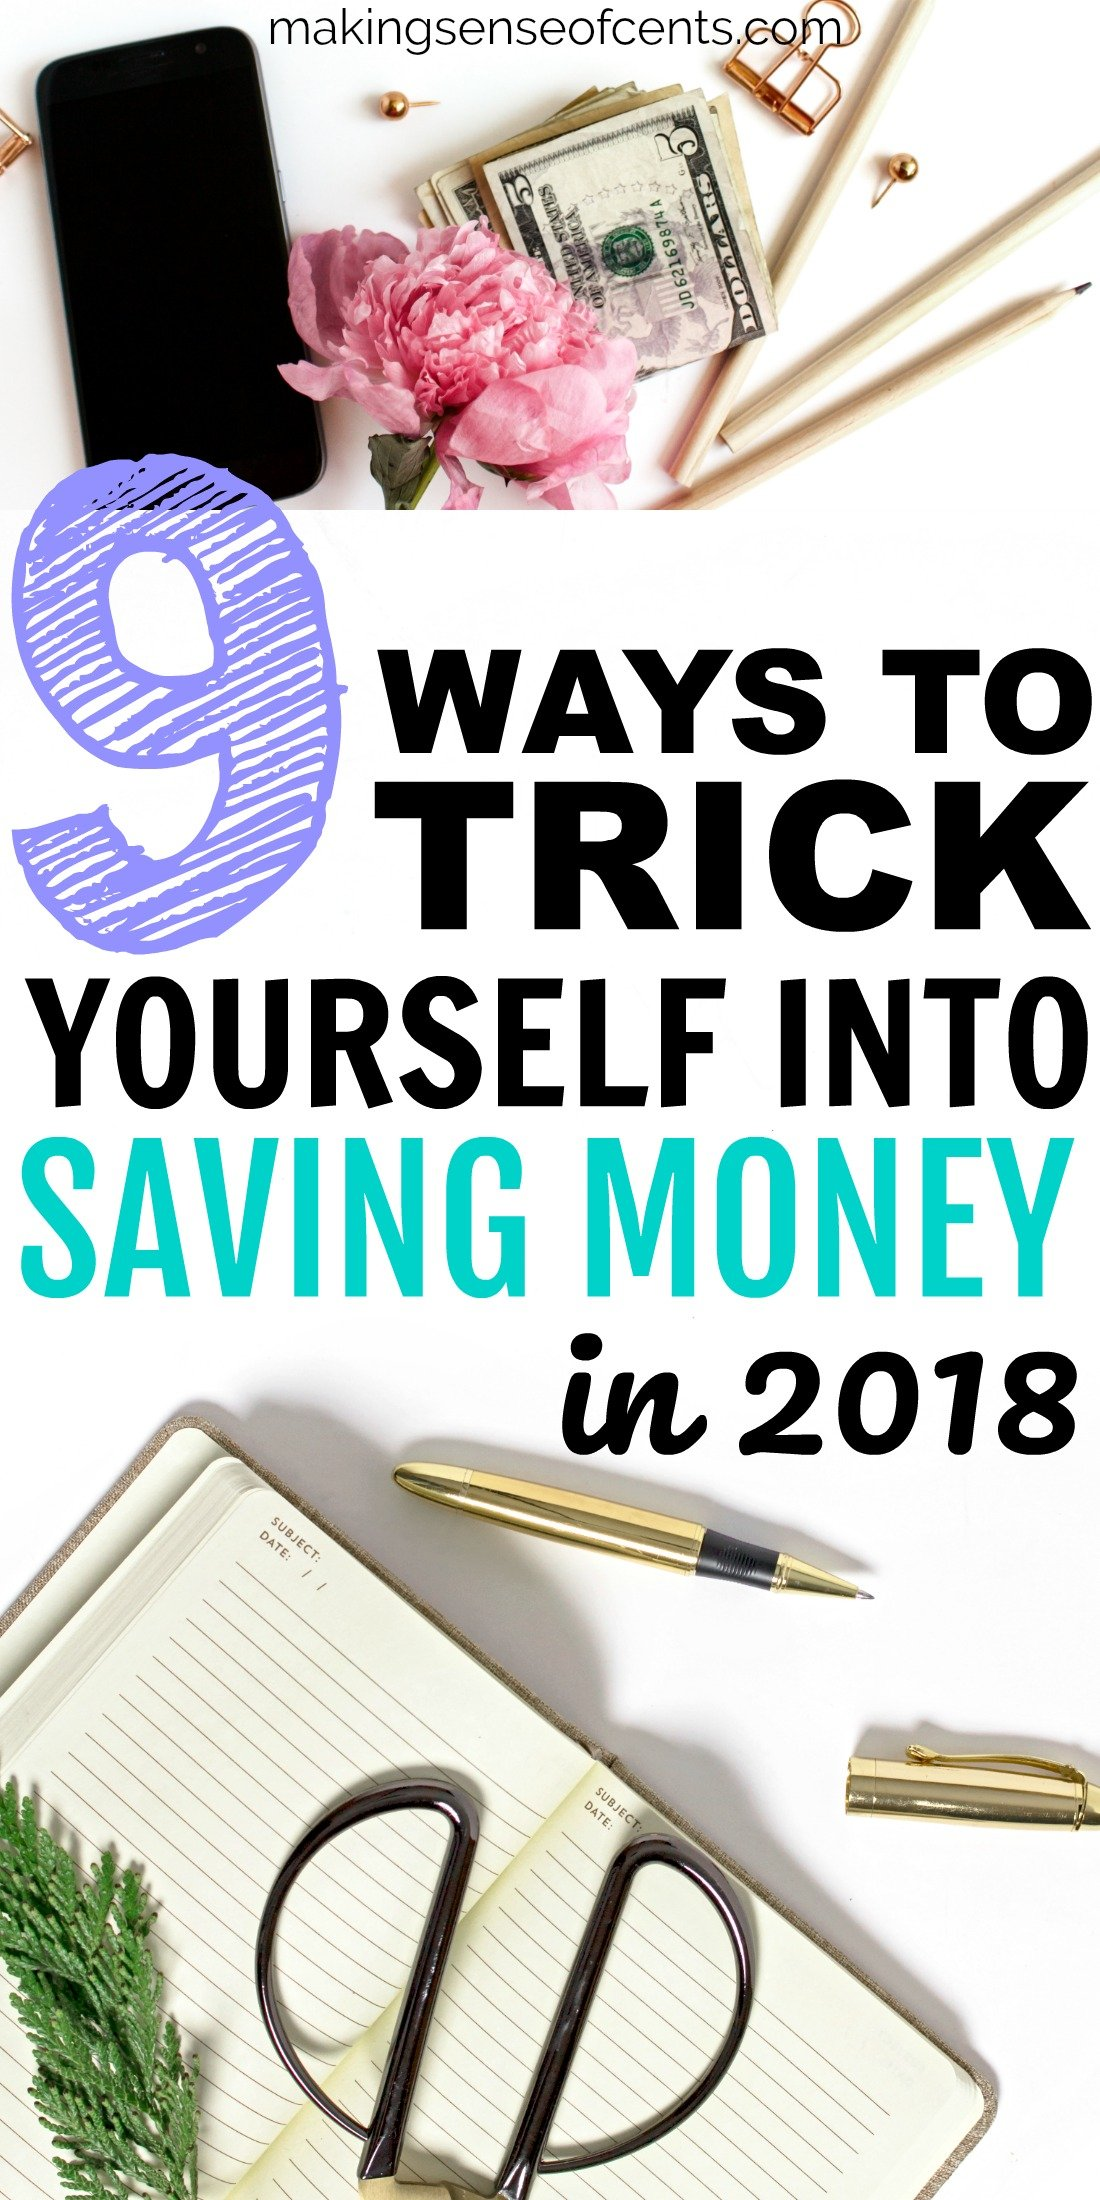 Find out how to trick yourself into saving money. #savingmoney #moneysavingtips